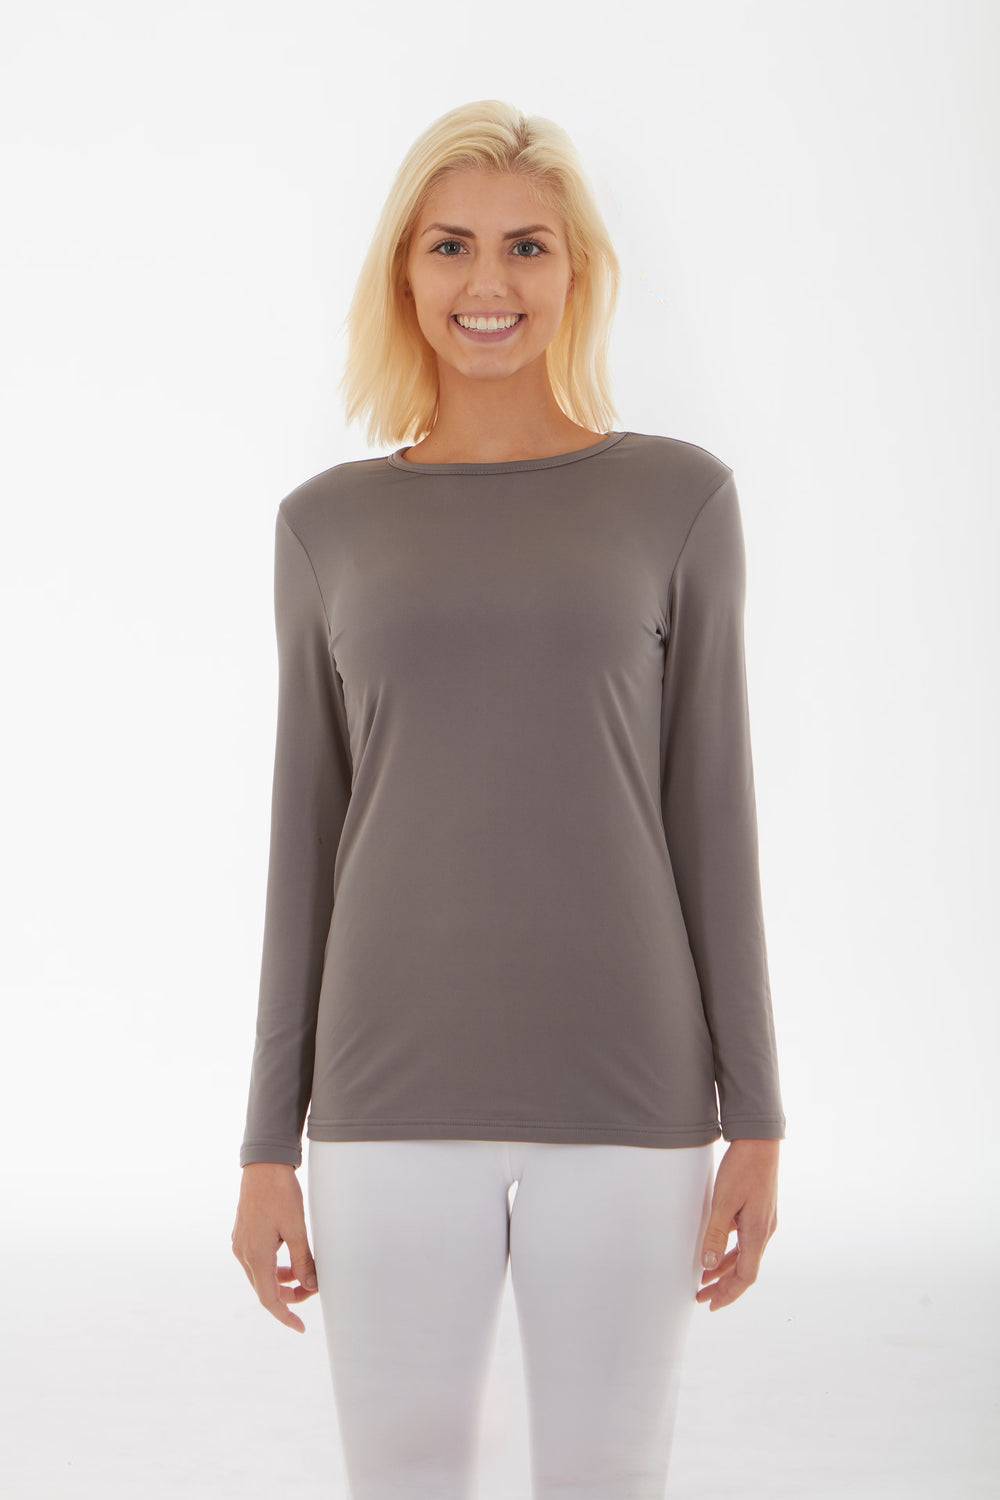 Grey Women's Crew Neck